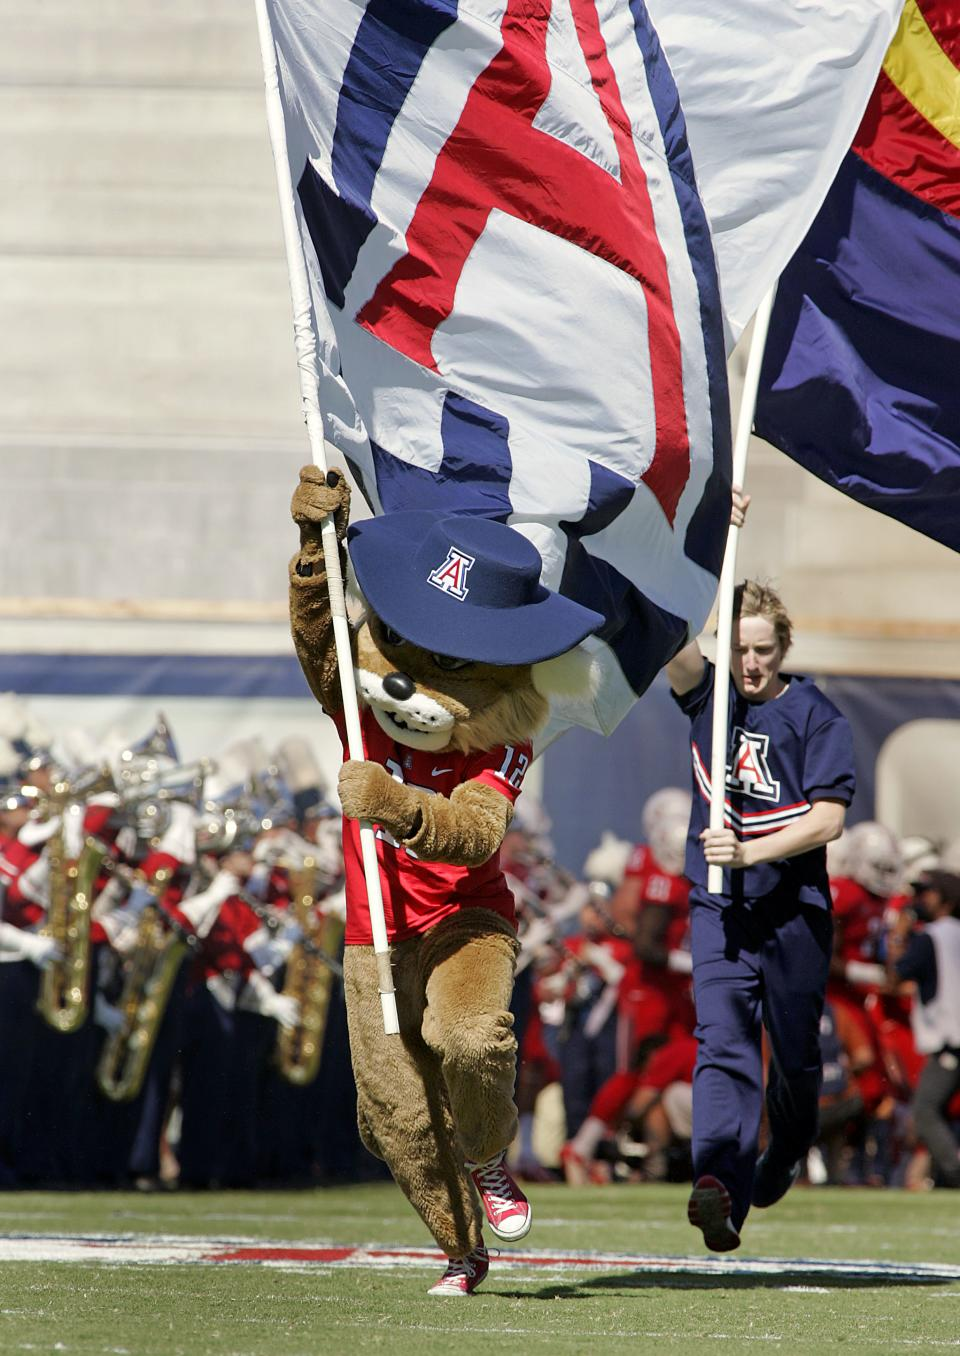 Arizona's mascot Wilbur the Wildcat, center, and a cheerleader carry flags as they run onto the field before the start of an NCAA college football game against Southern California at Arizona Stadium in Tucson, Ariz., Saturday, Oct. 27, 2012. (AP Photo/John Miller)